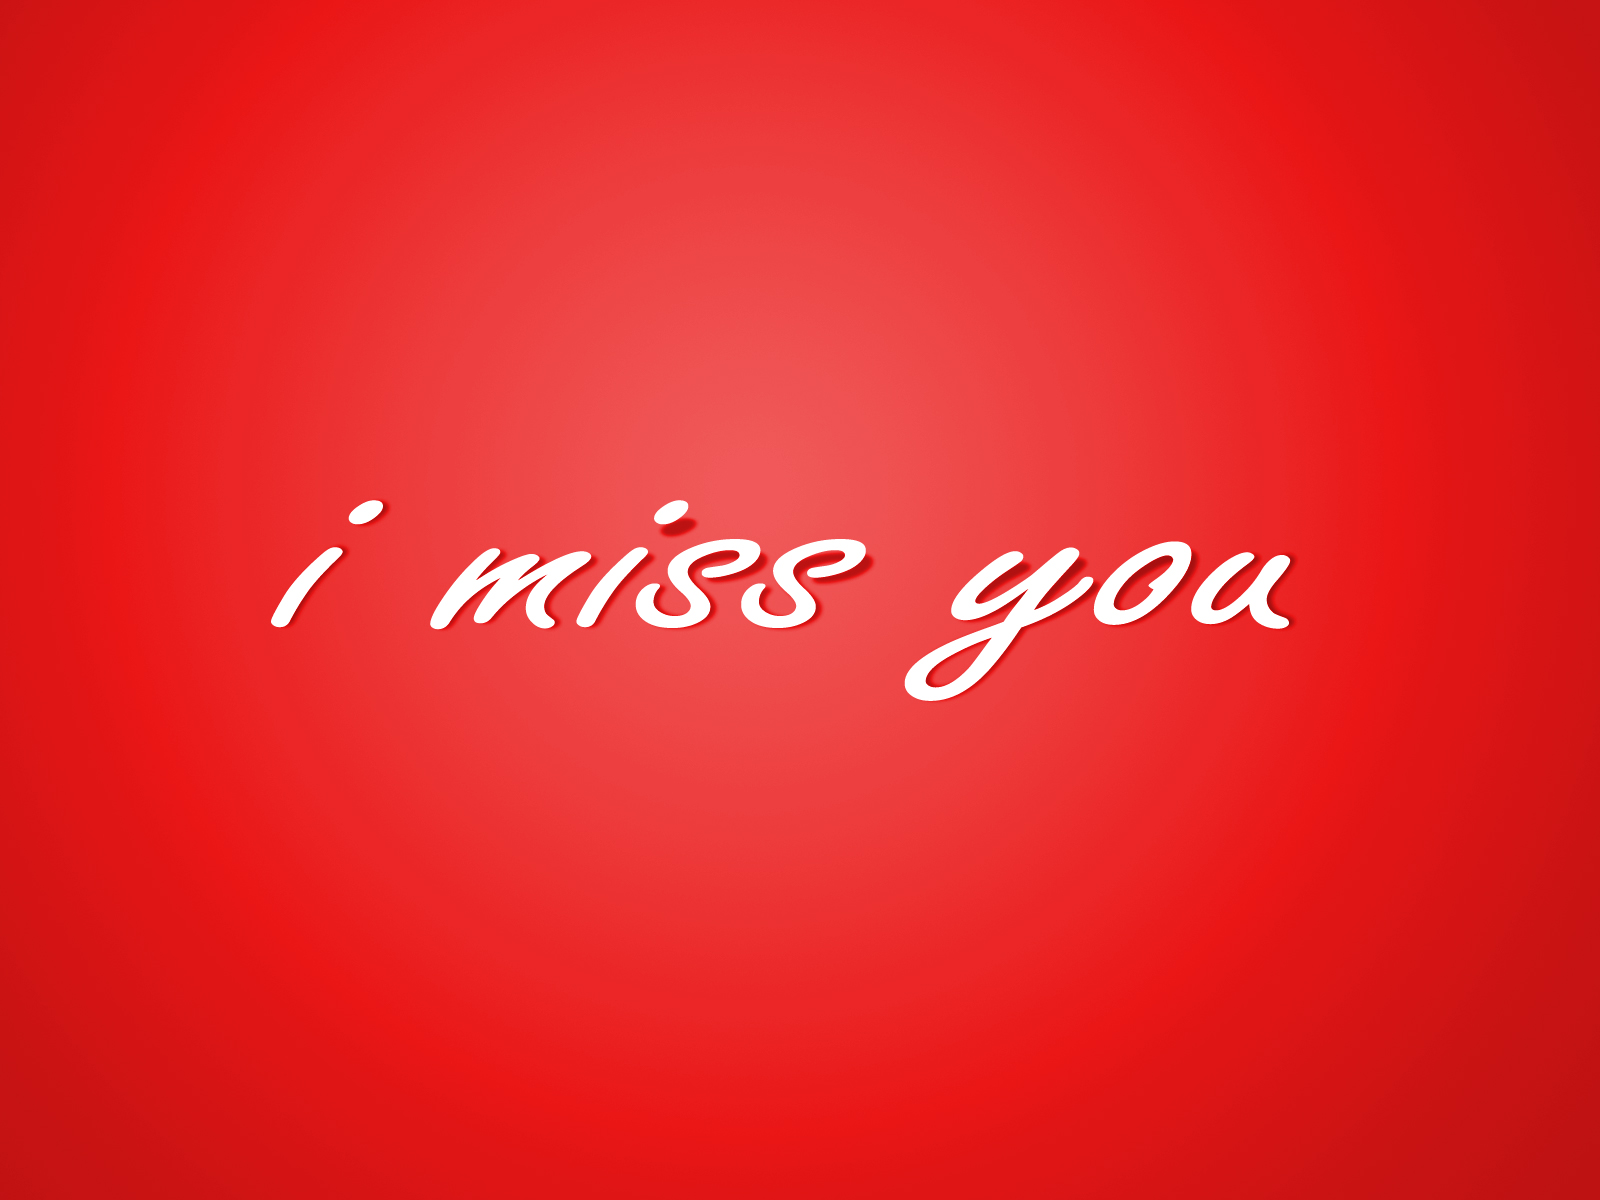 wallpaper gallery i miss you